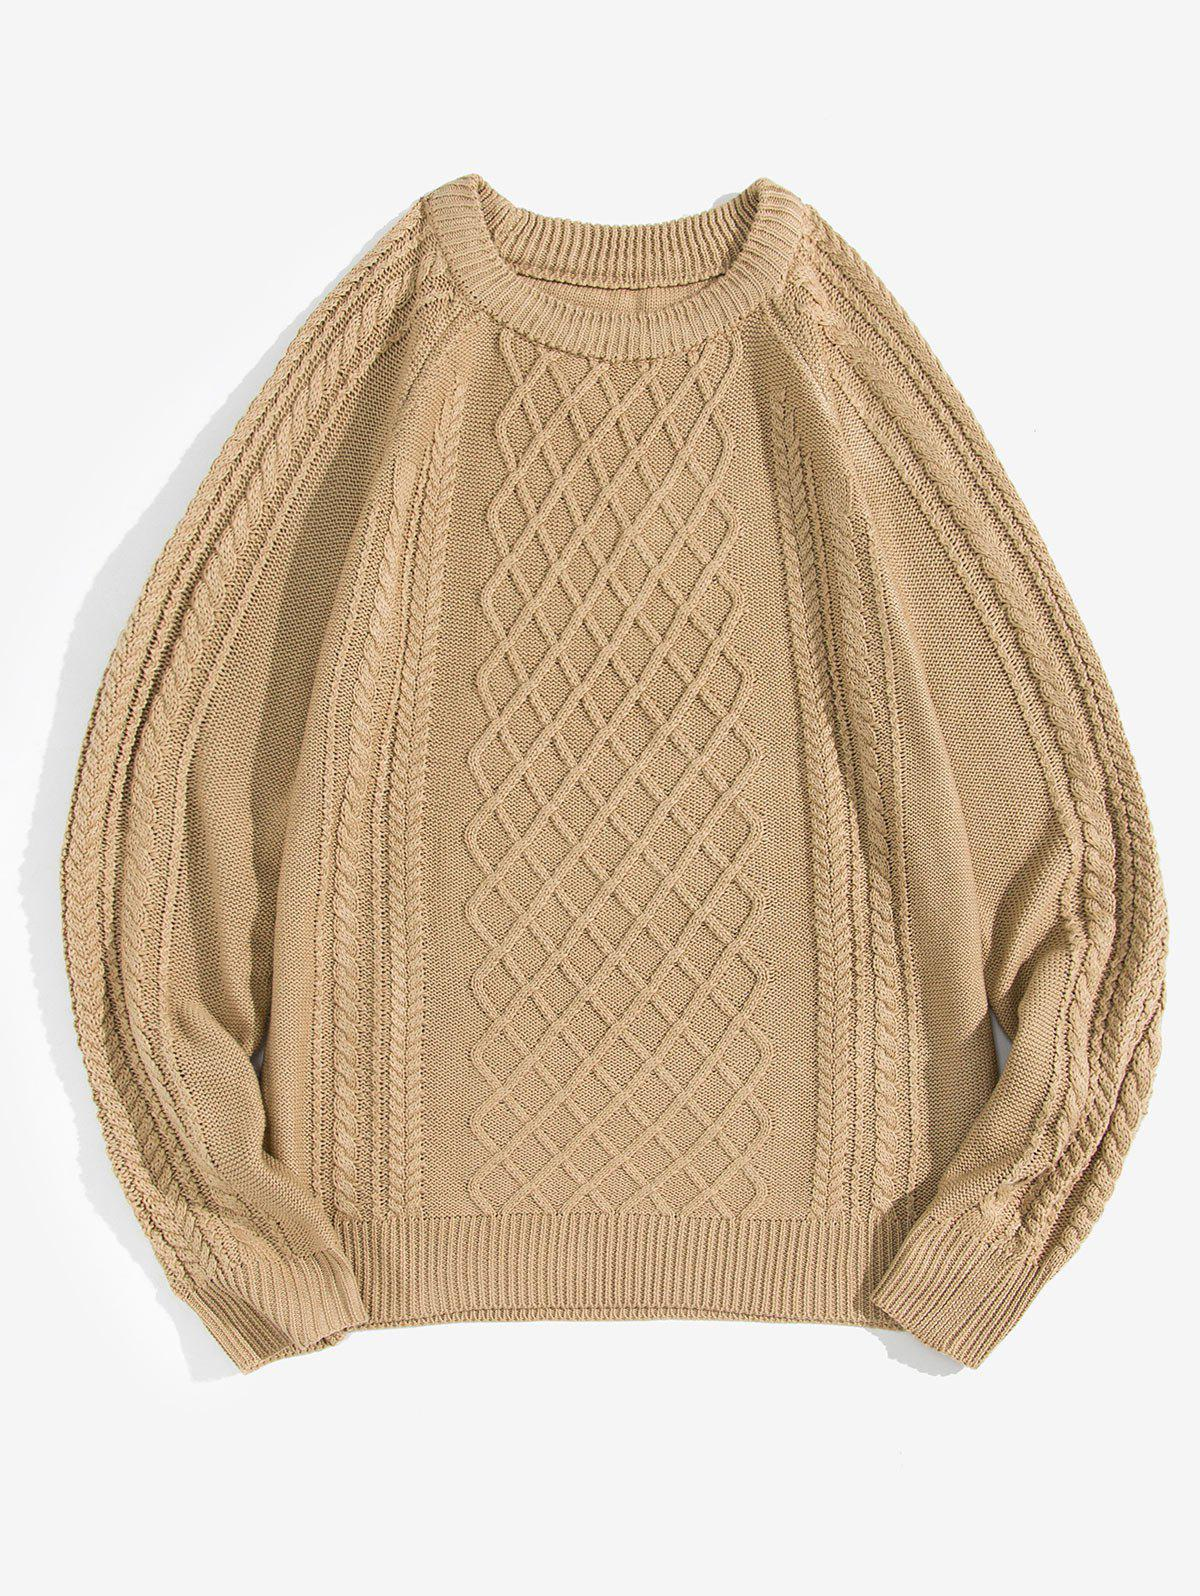 Solid Color Cable Knit Pullover Sweater - KHAKI XS